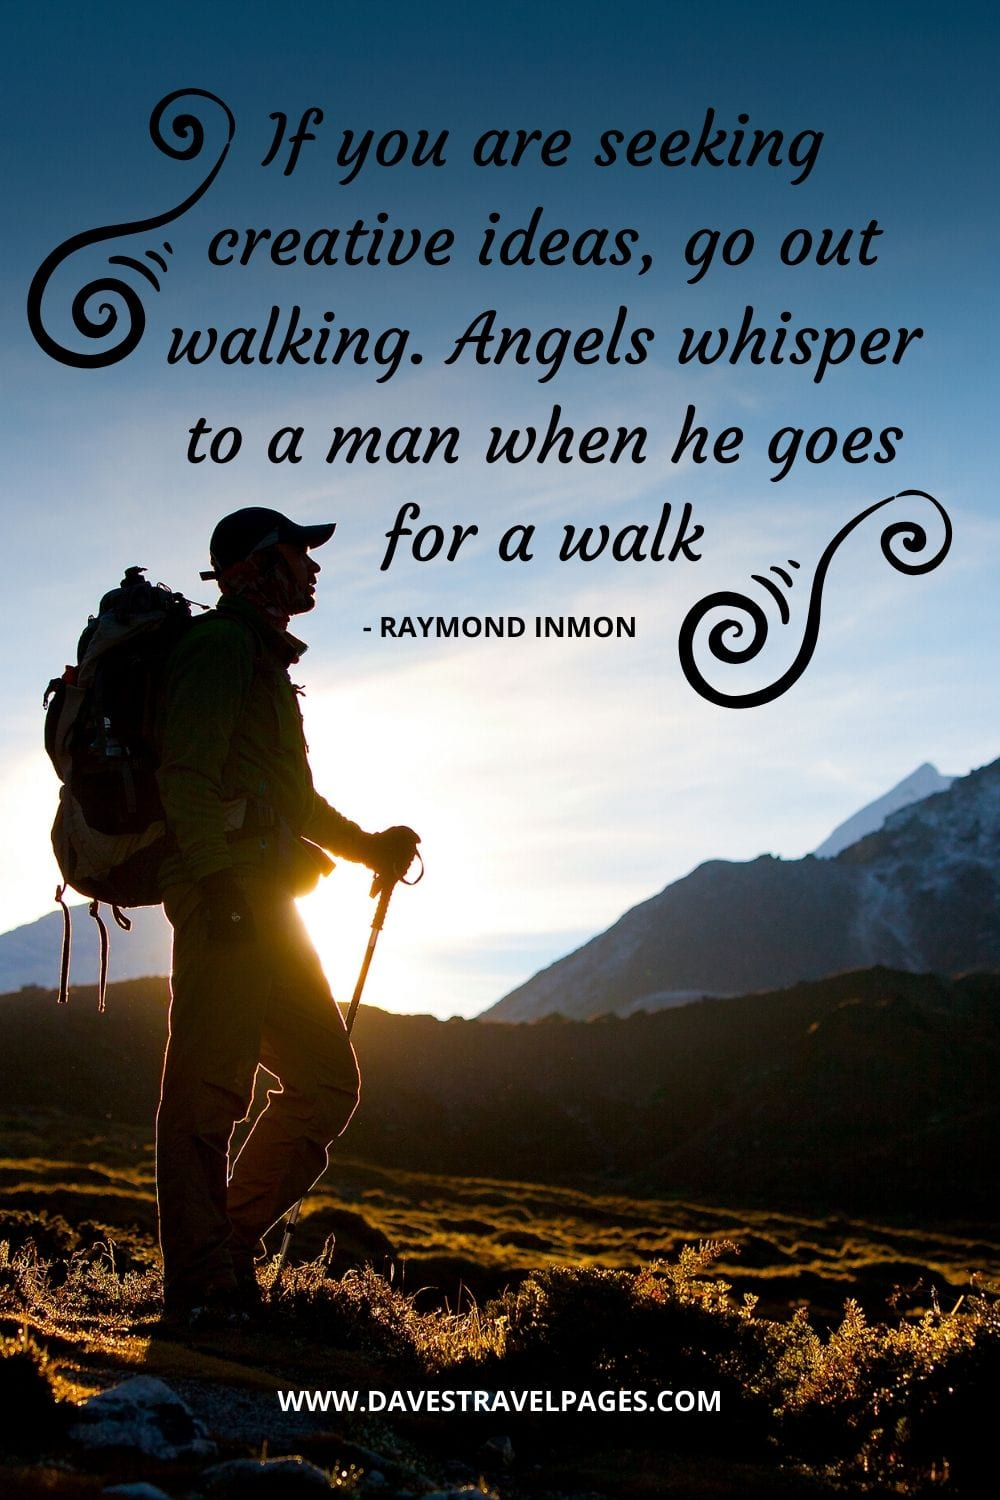 Walking quotes - If you are seeking creative ideas, go out walking. Angels whisper to a man when he goes for a walk - Raymond Inmon